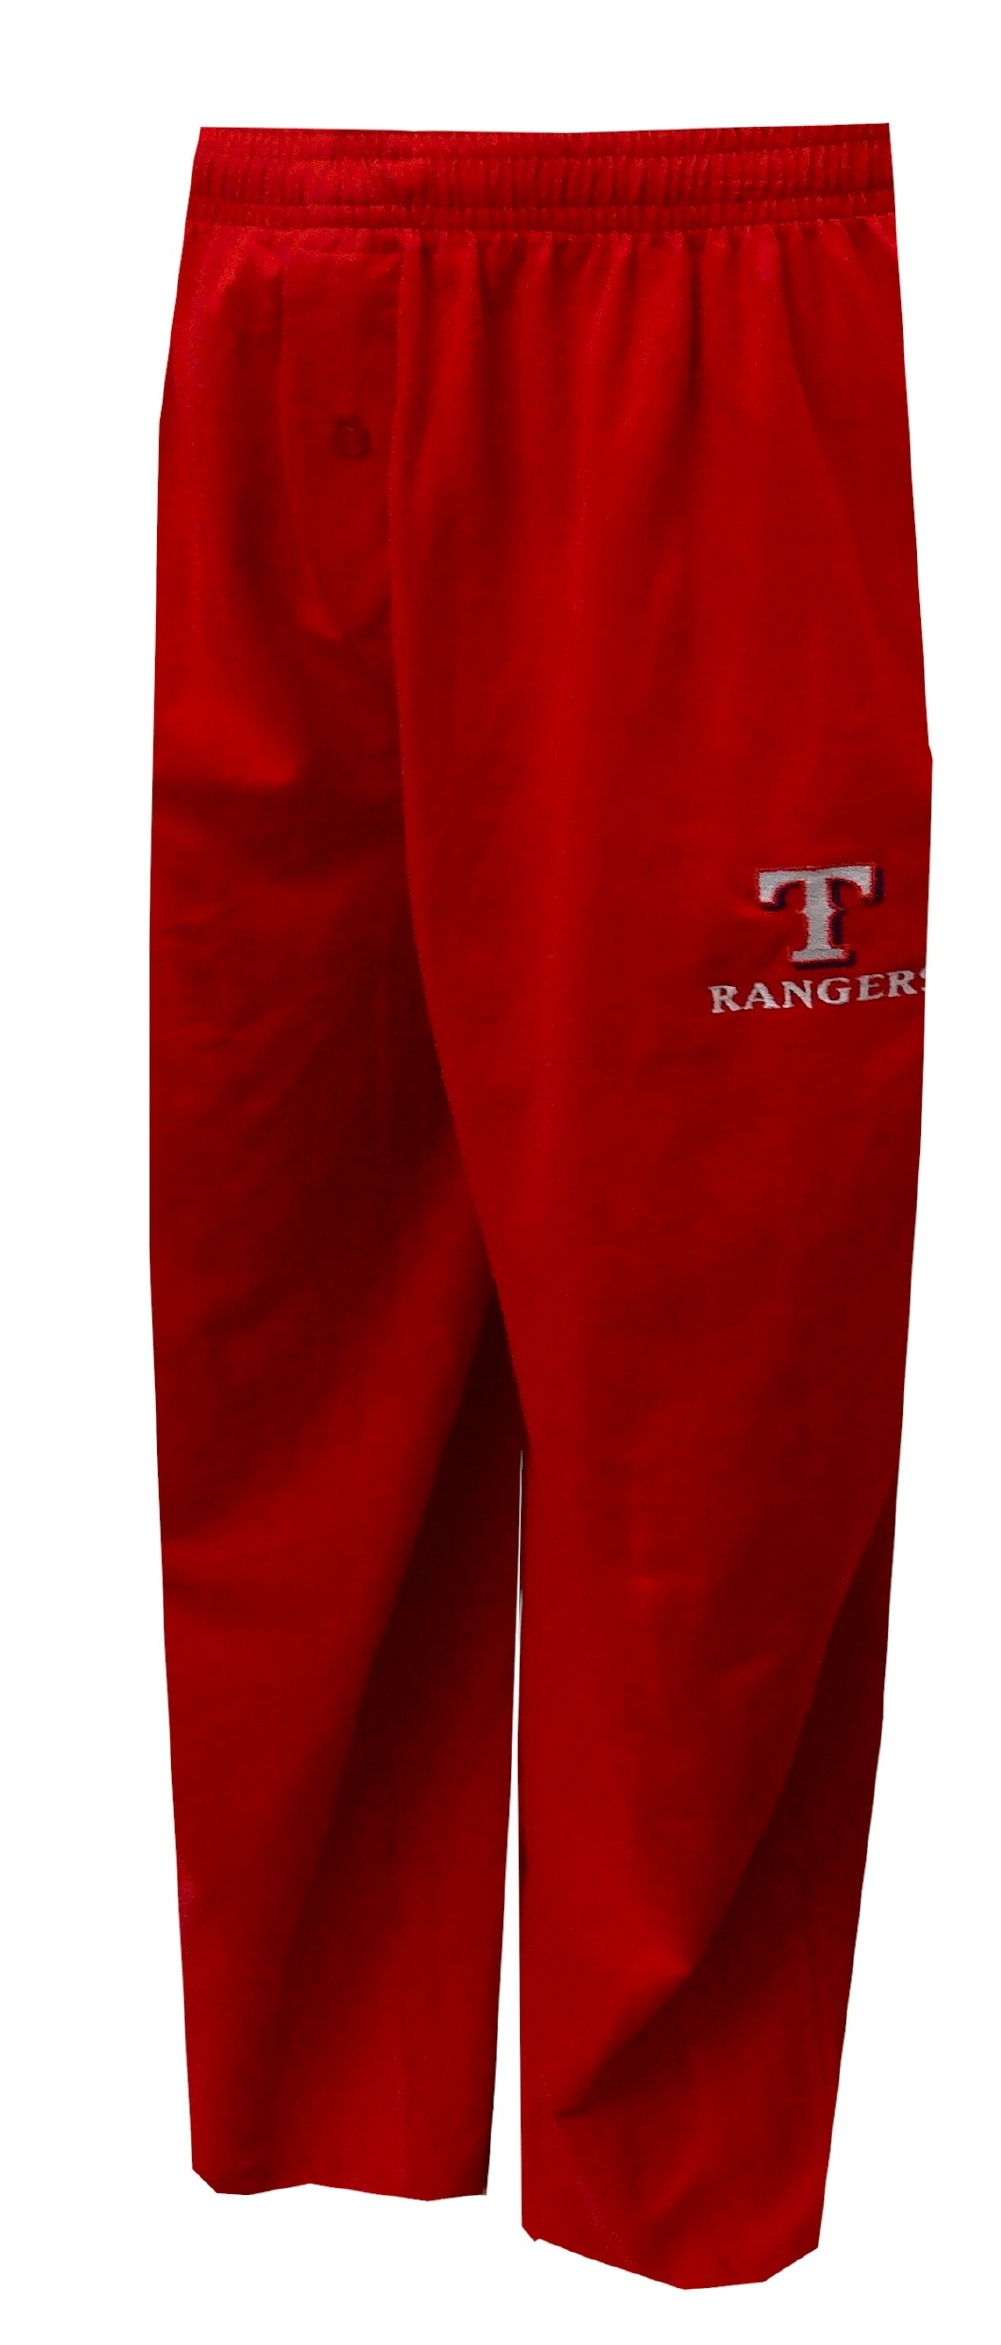 MLB Texas Rangers Cotton Knit Embroidered Logo Lounge Pants for men